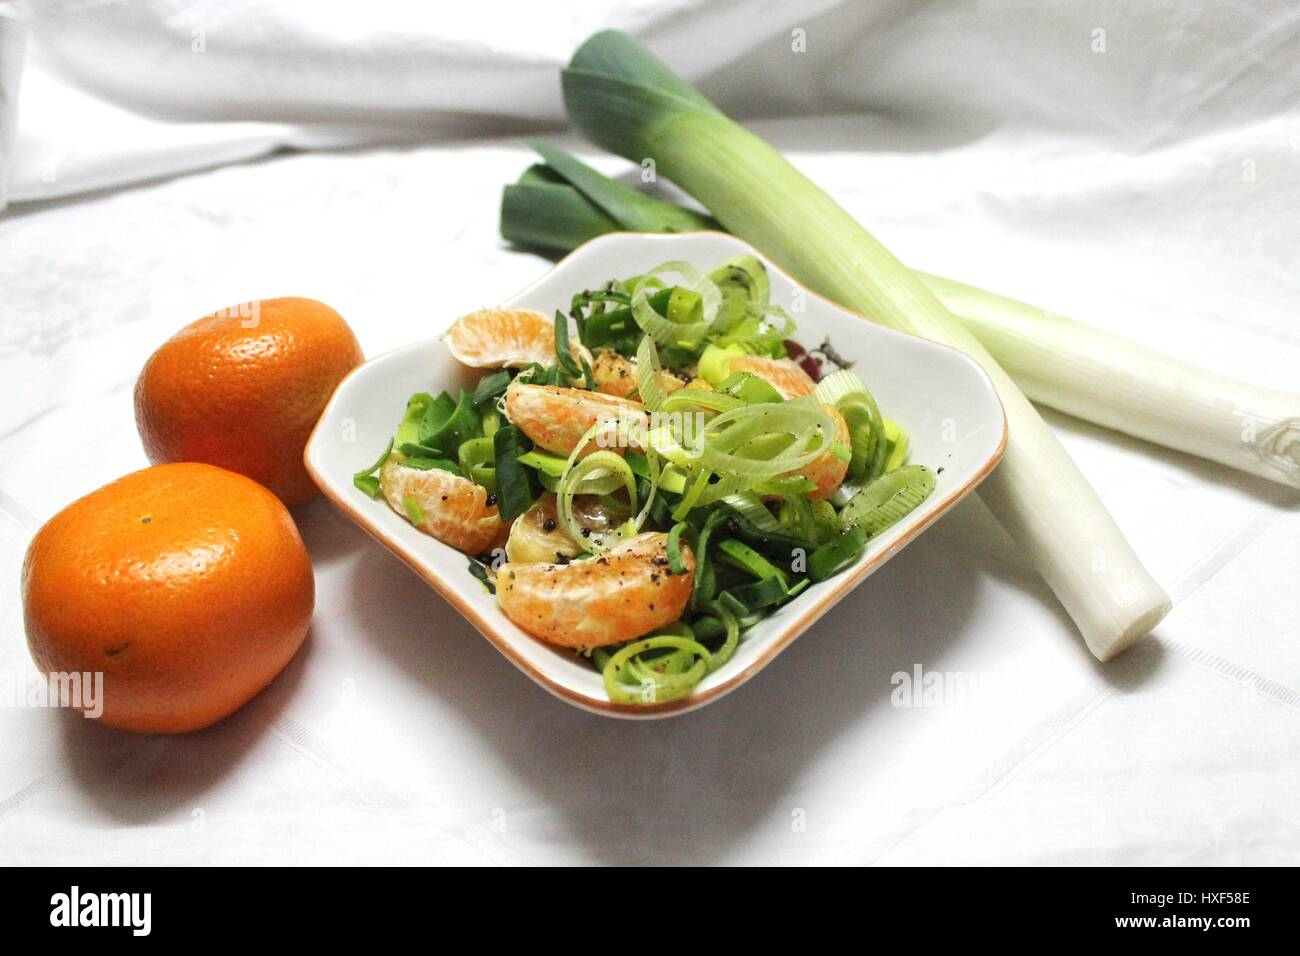 Stock Photo   Fusion Kitchen Easy Made Salad From Ripe Leek Onion And Sweet  Mandarine Under Spices And Olive Oil